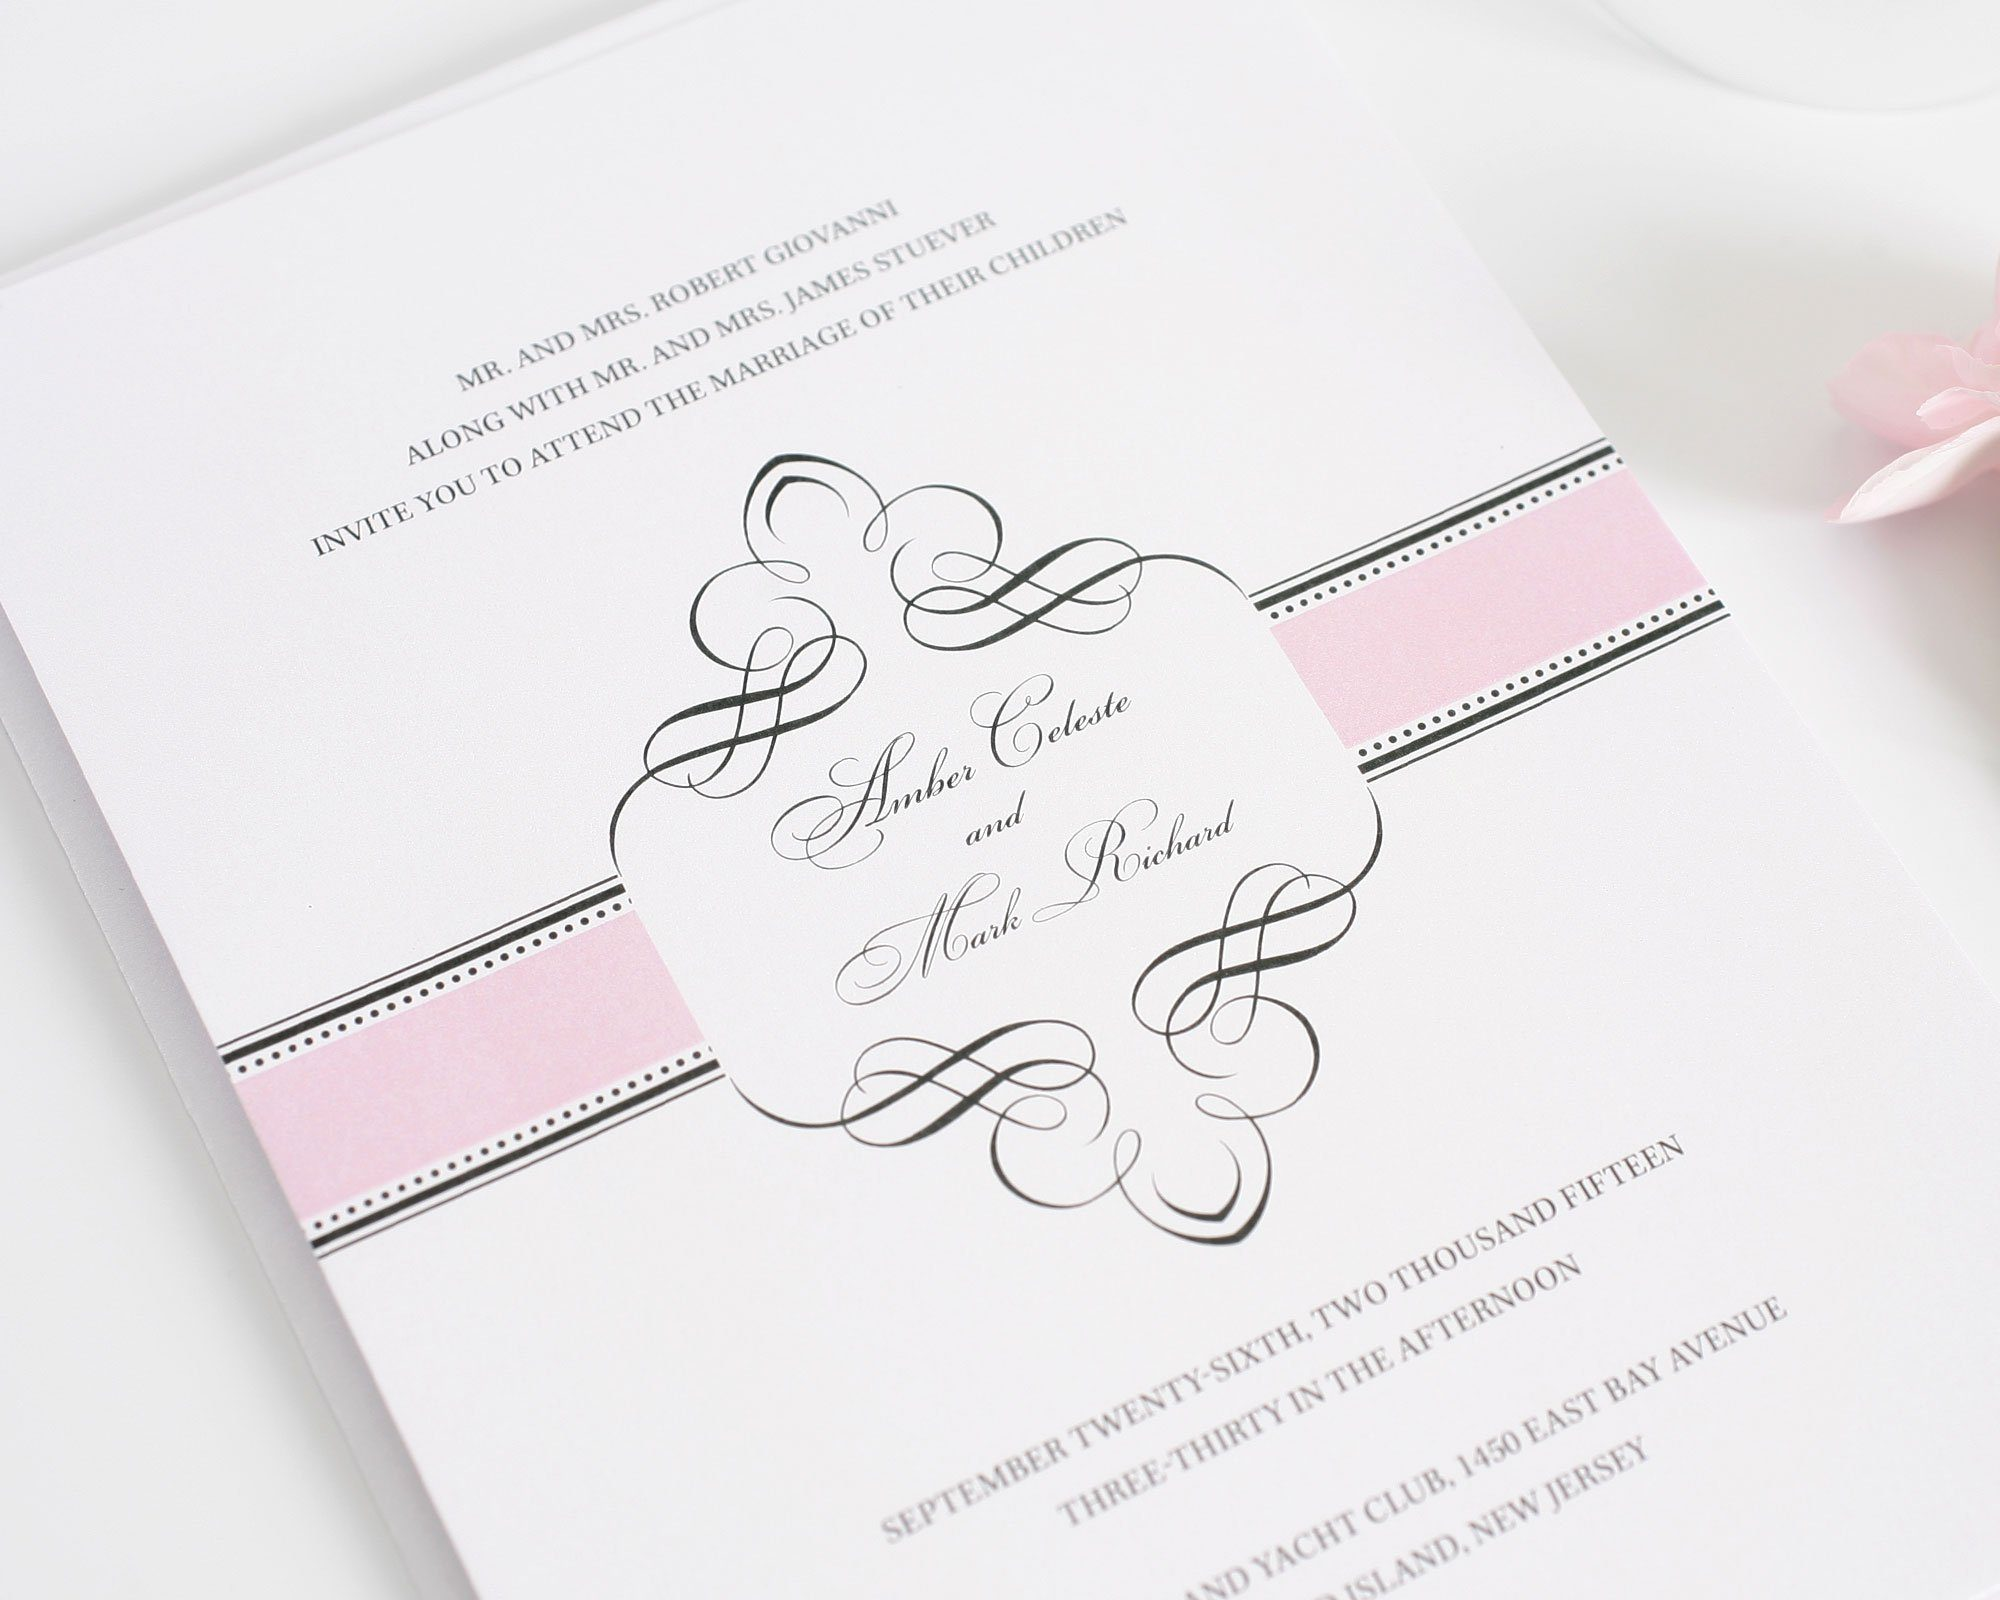 1920s vintage wedding invitations in pink